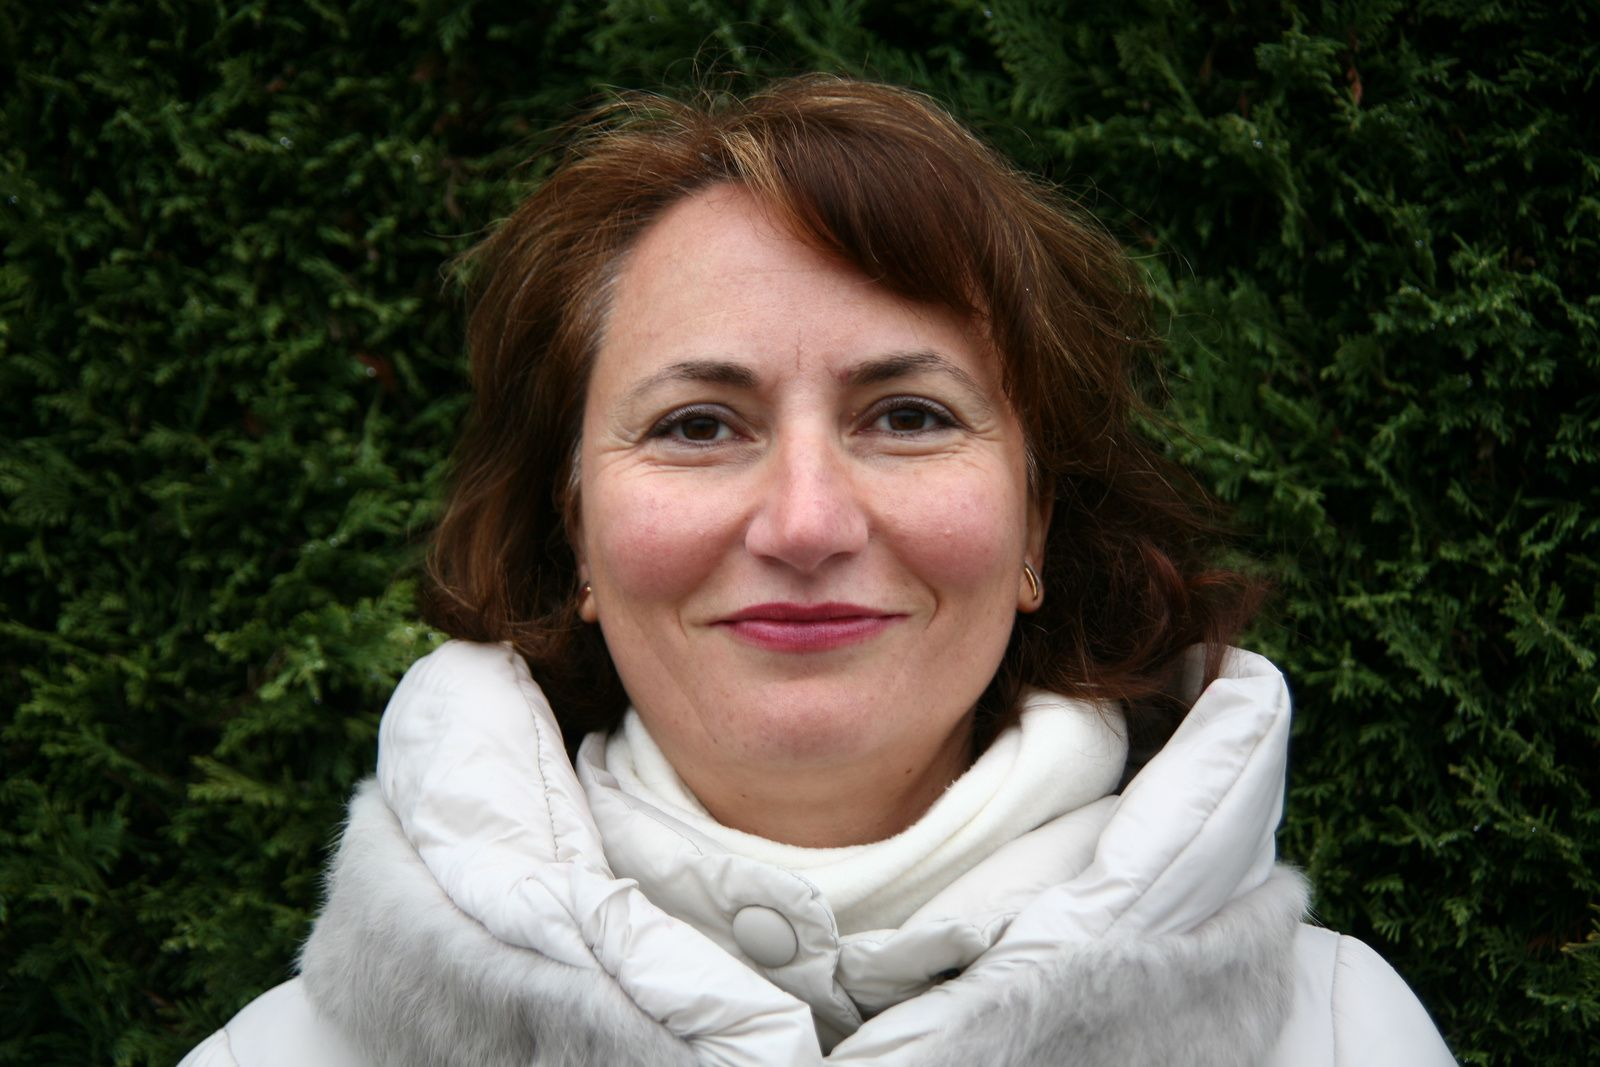 Carine Chomilier-Bourgeade